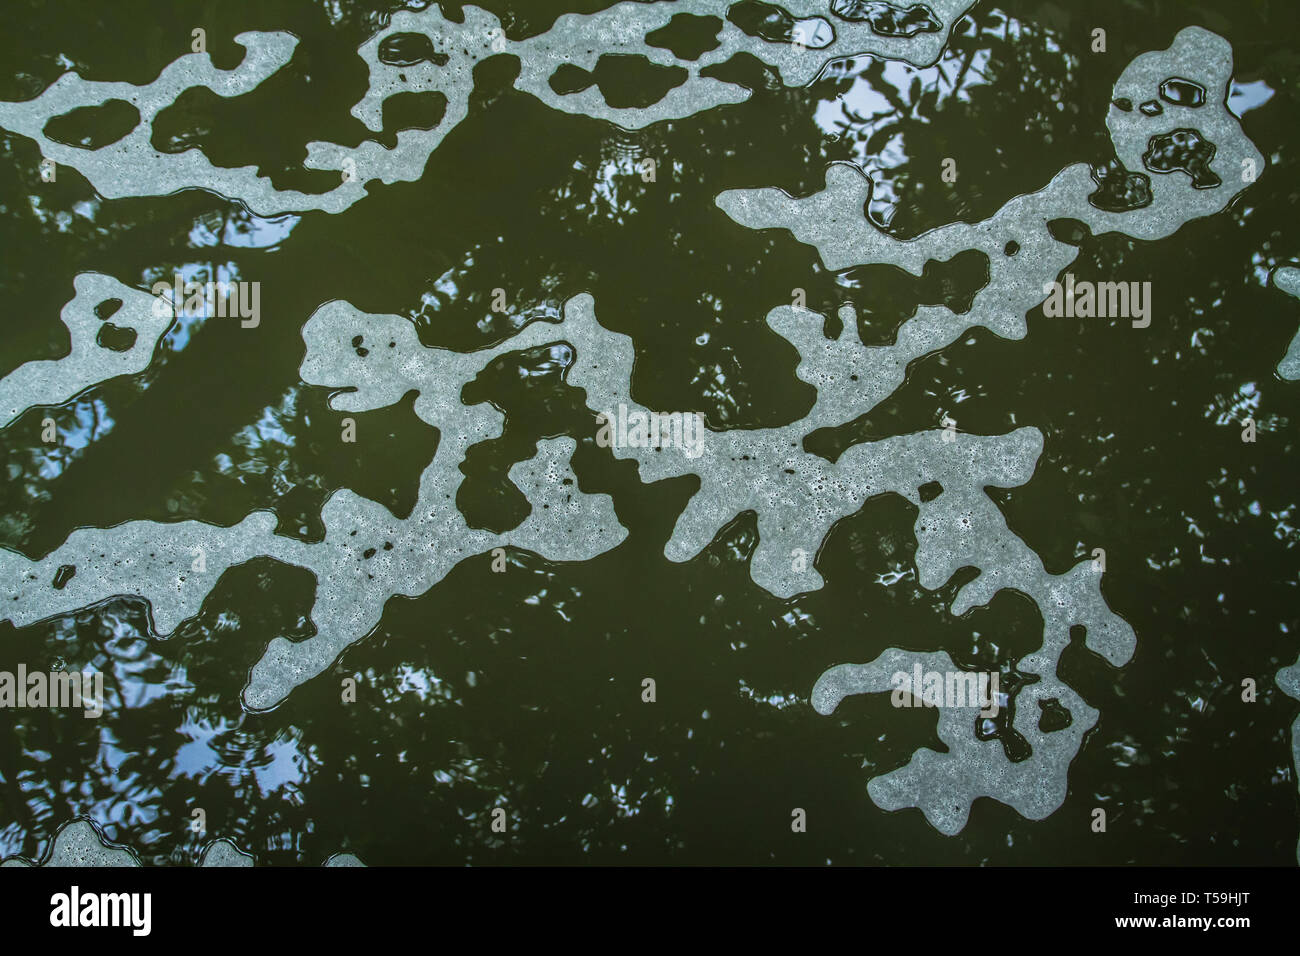 Foam patterns on the river water surface - Stock Image